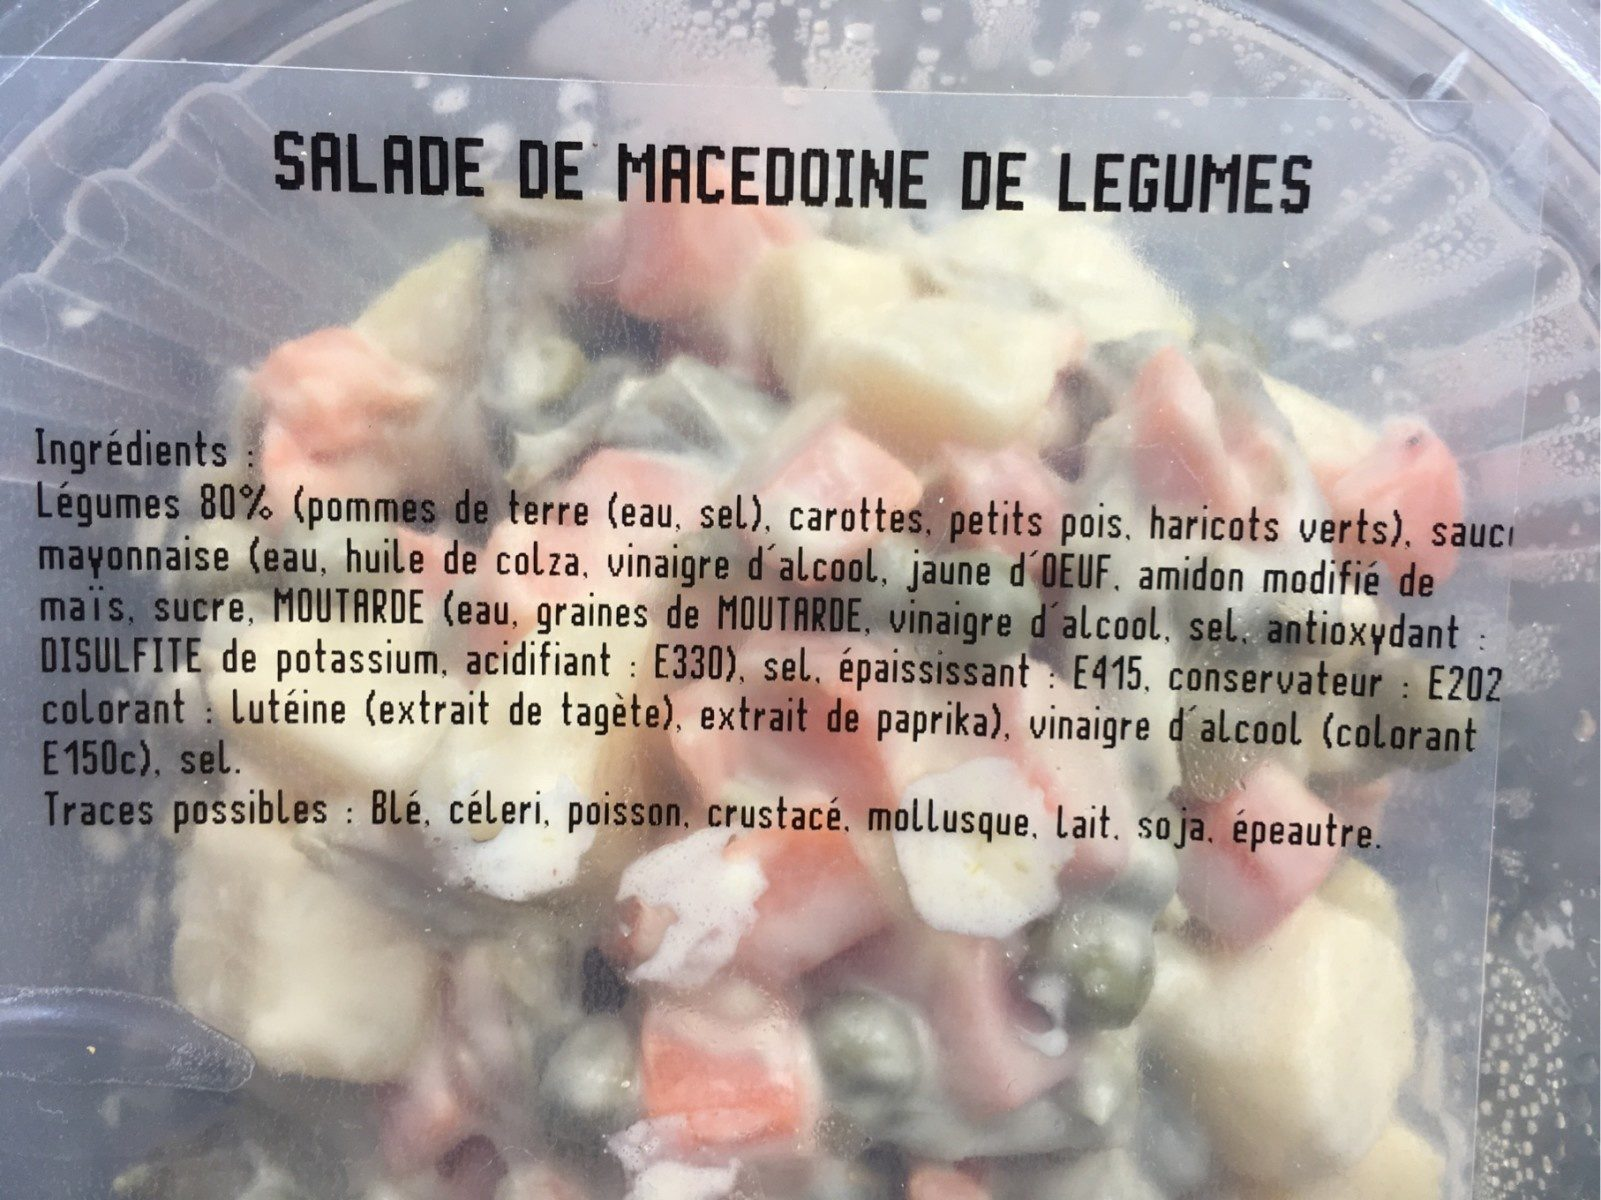 Macédoine de légumes - Ingredients - fr